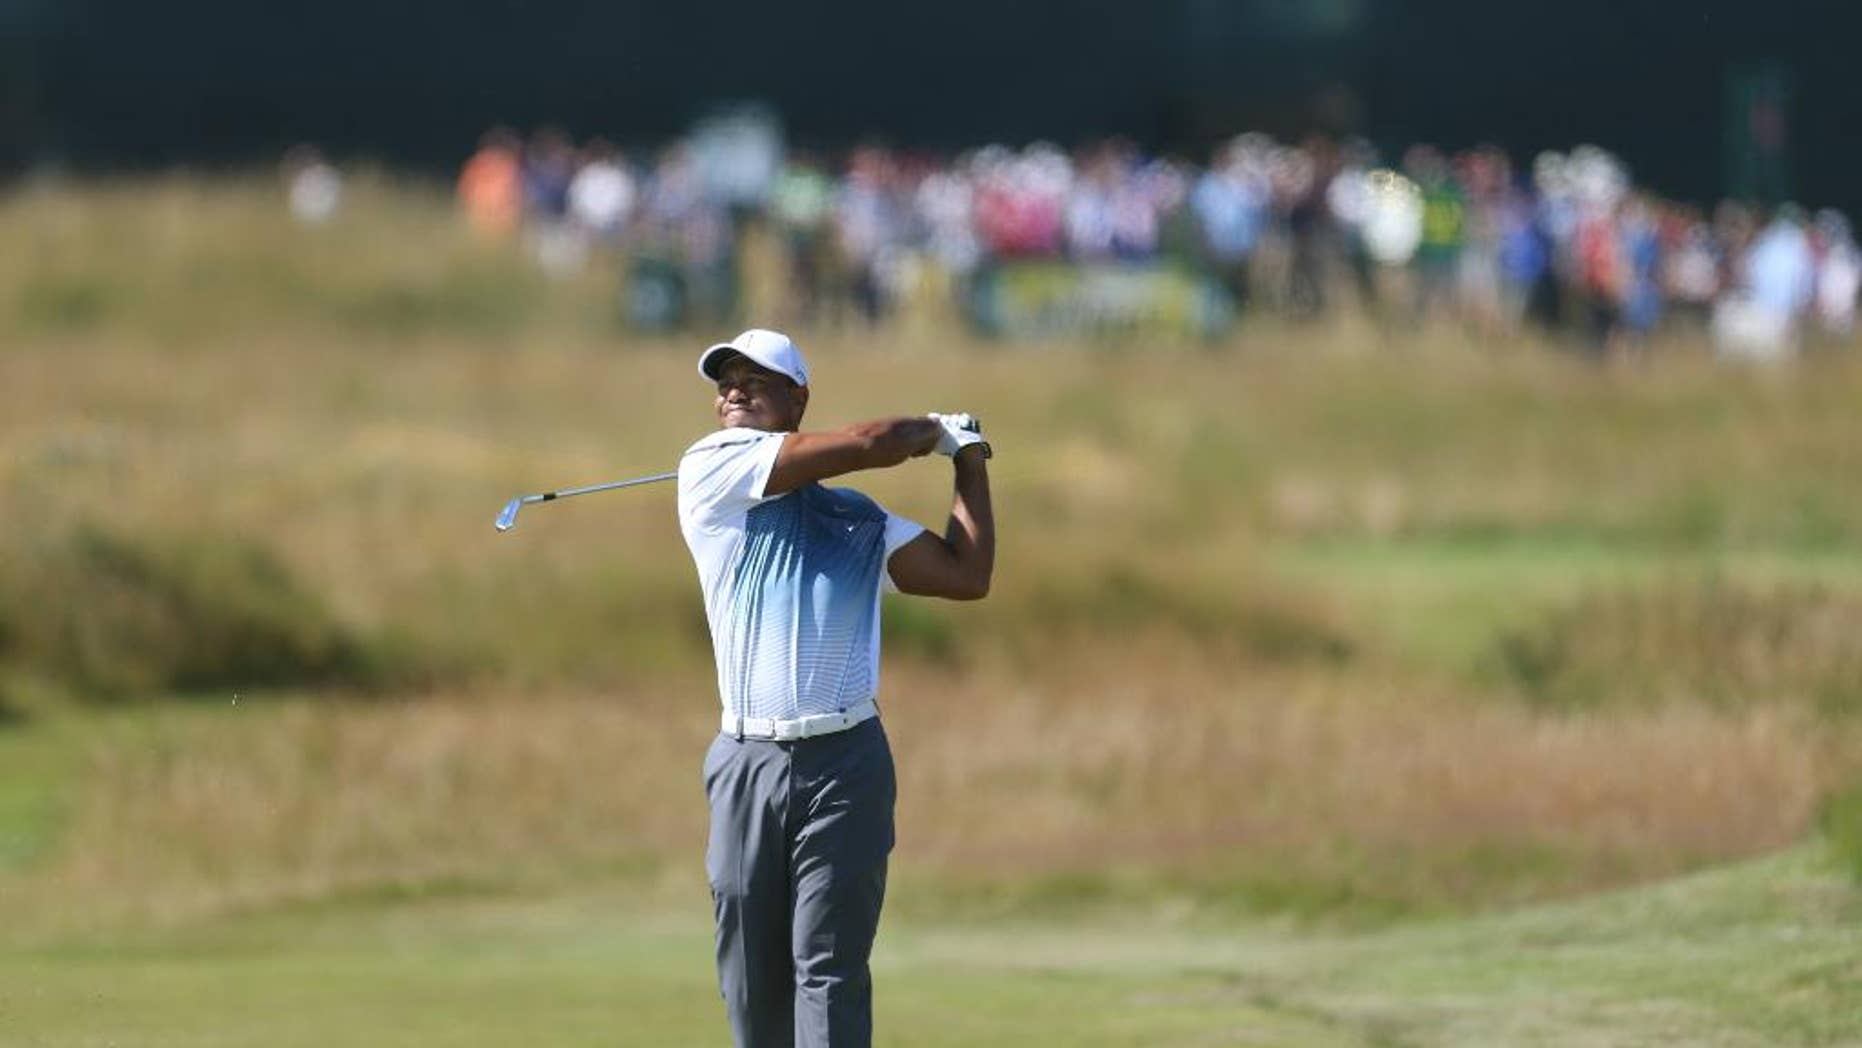 Tiger Woods of the US plays a shot on the 2nd fairway during the first day of the British Open Golf championship at the Royal Liverpool golf club, Hoylake, England, Thursday July 17, 2014. (AP Photo/Peter Morrison)